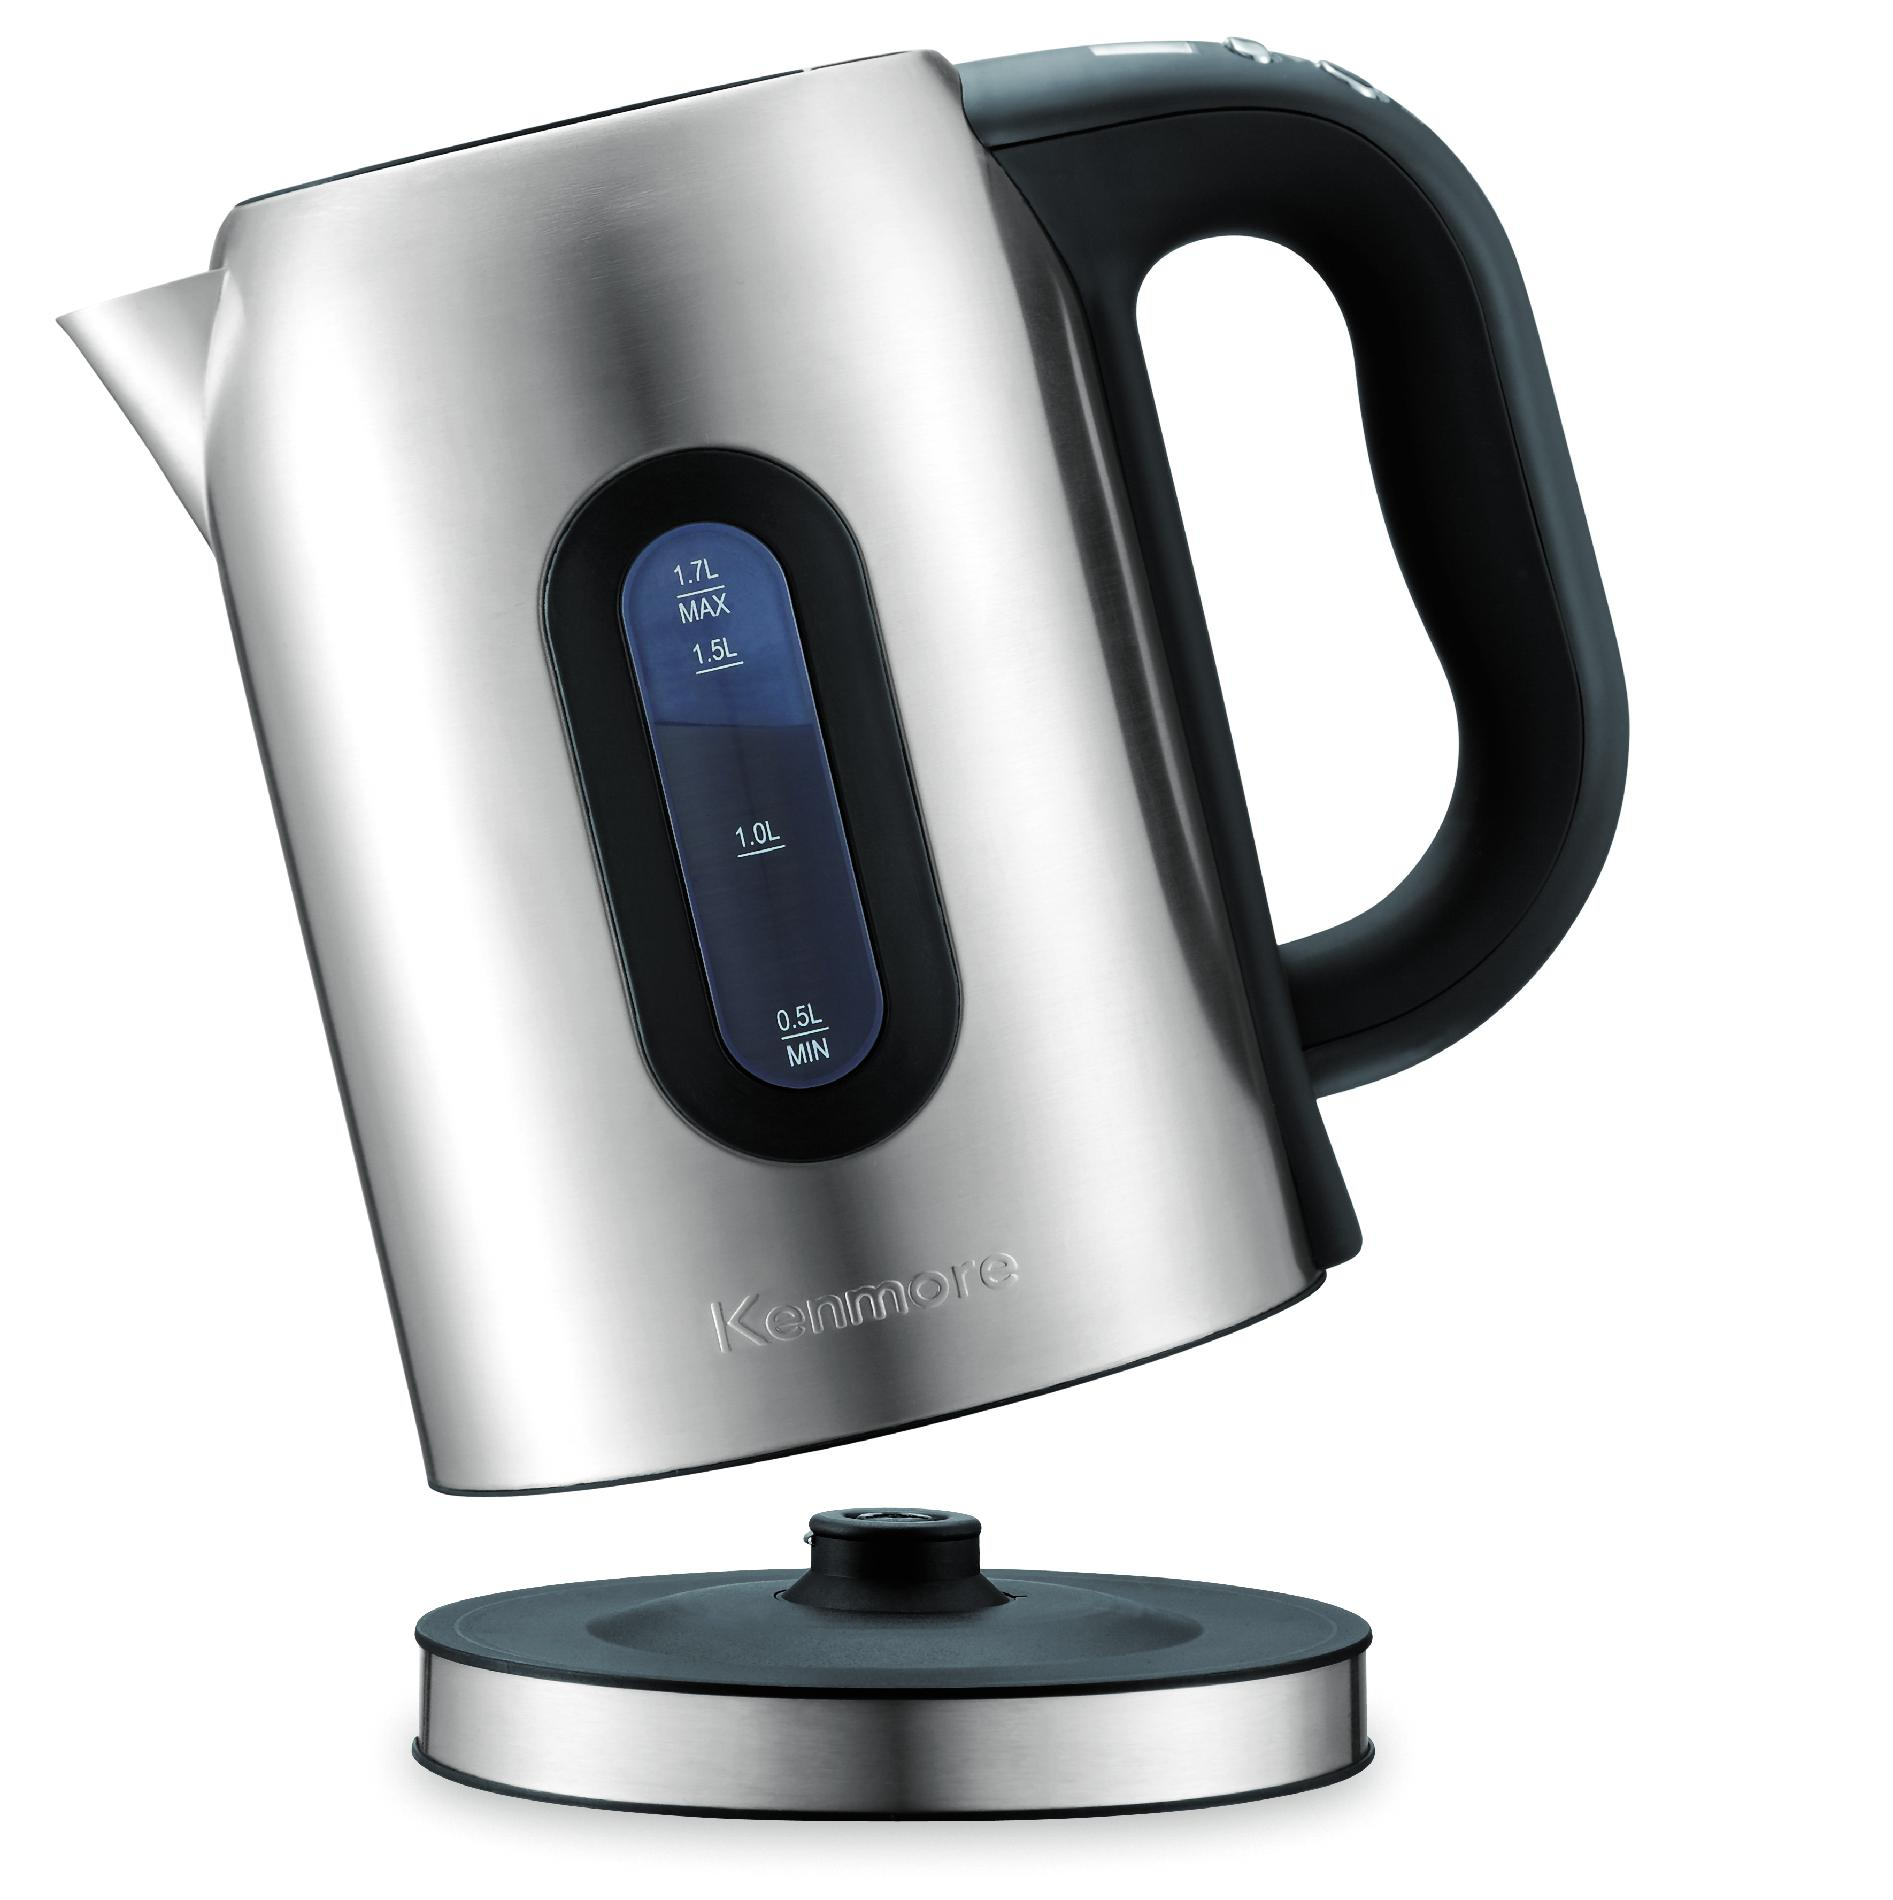 Kenmore Digital Tea Kettle